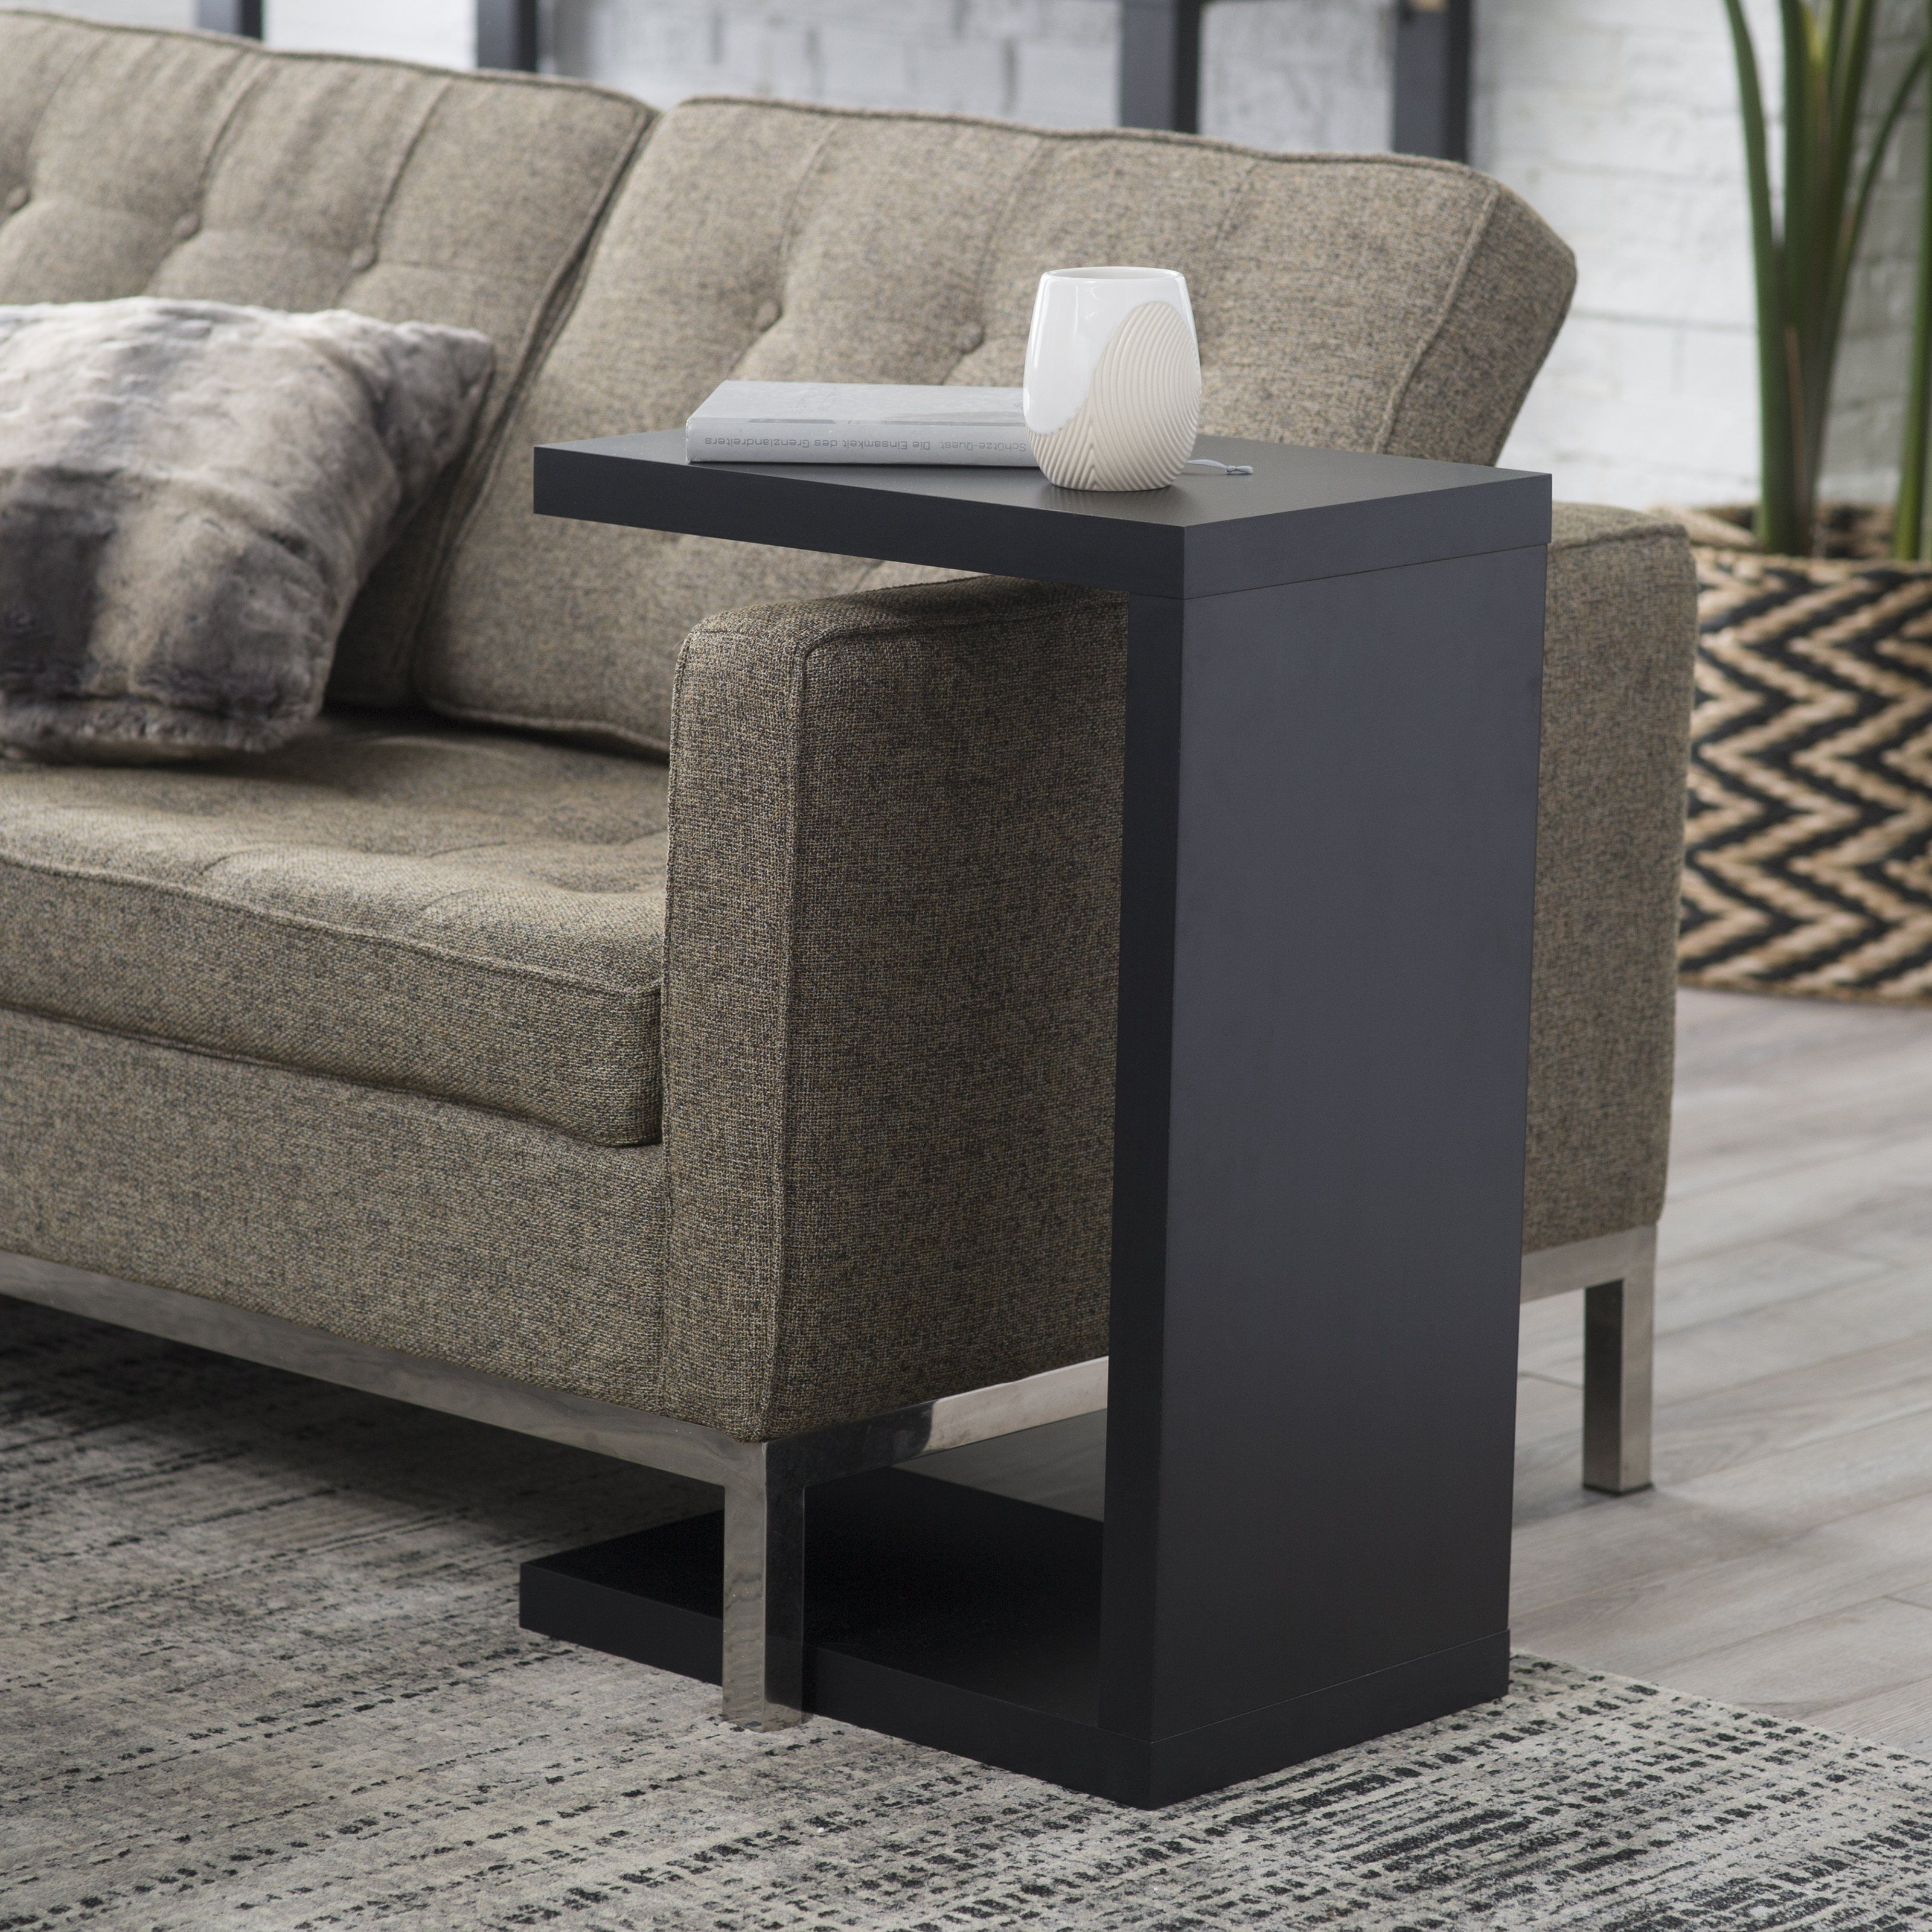 Finley Home Hudson C End Table End Tables At Hayneedle End